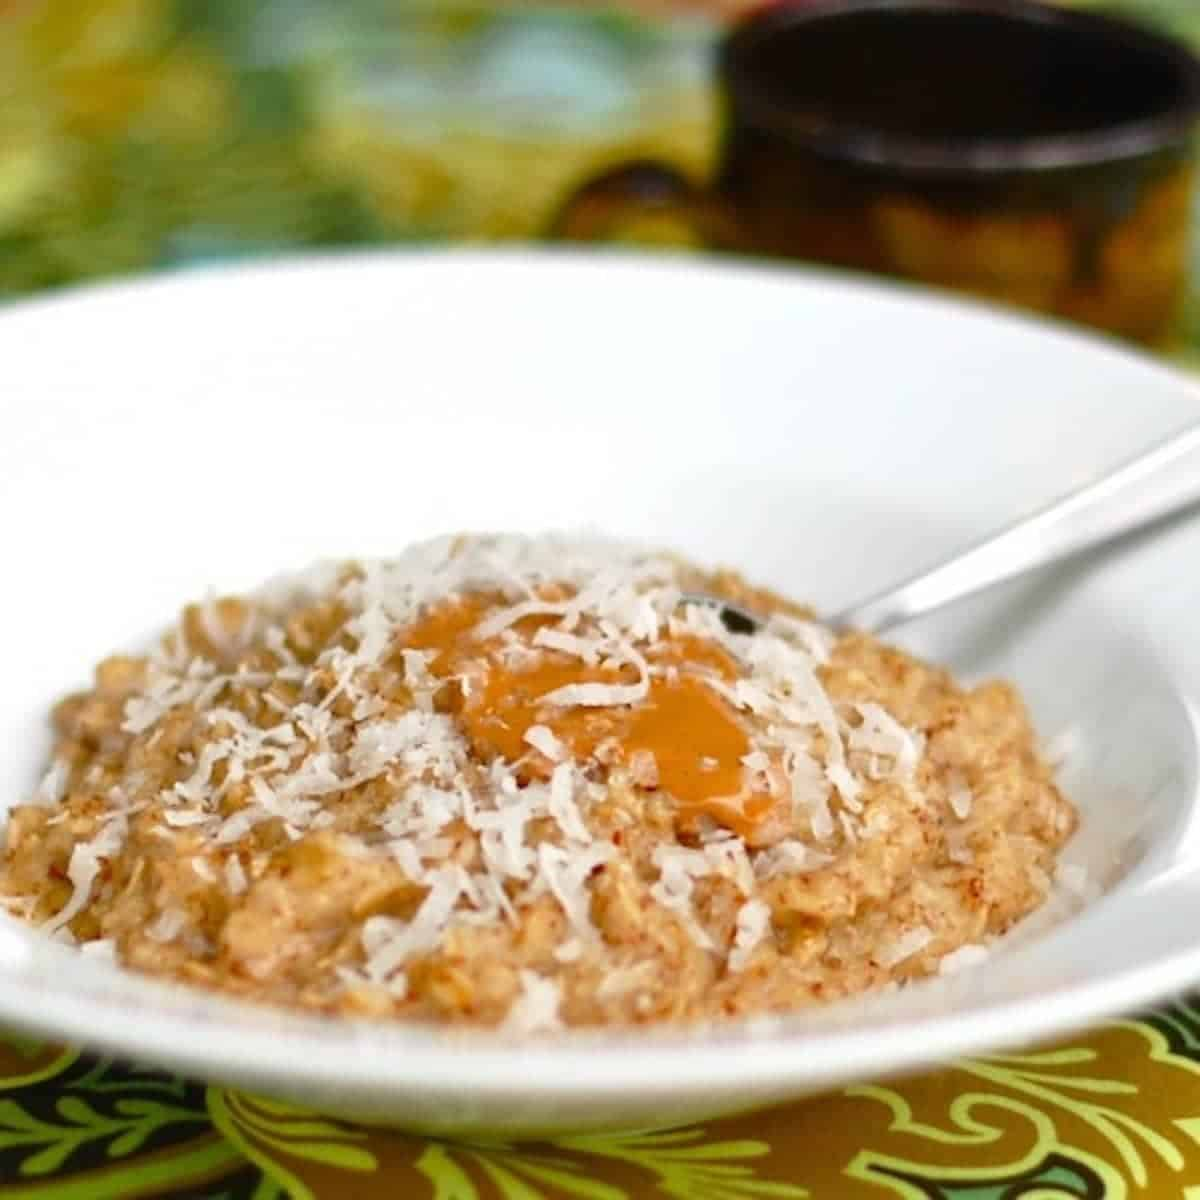 Coconut peanut butter oatmeal with coconut shreds in a bowl with a spoon.